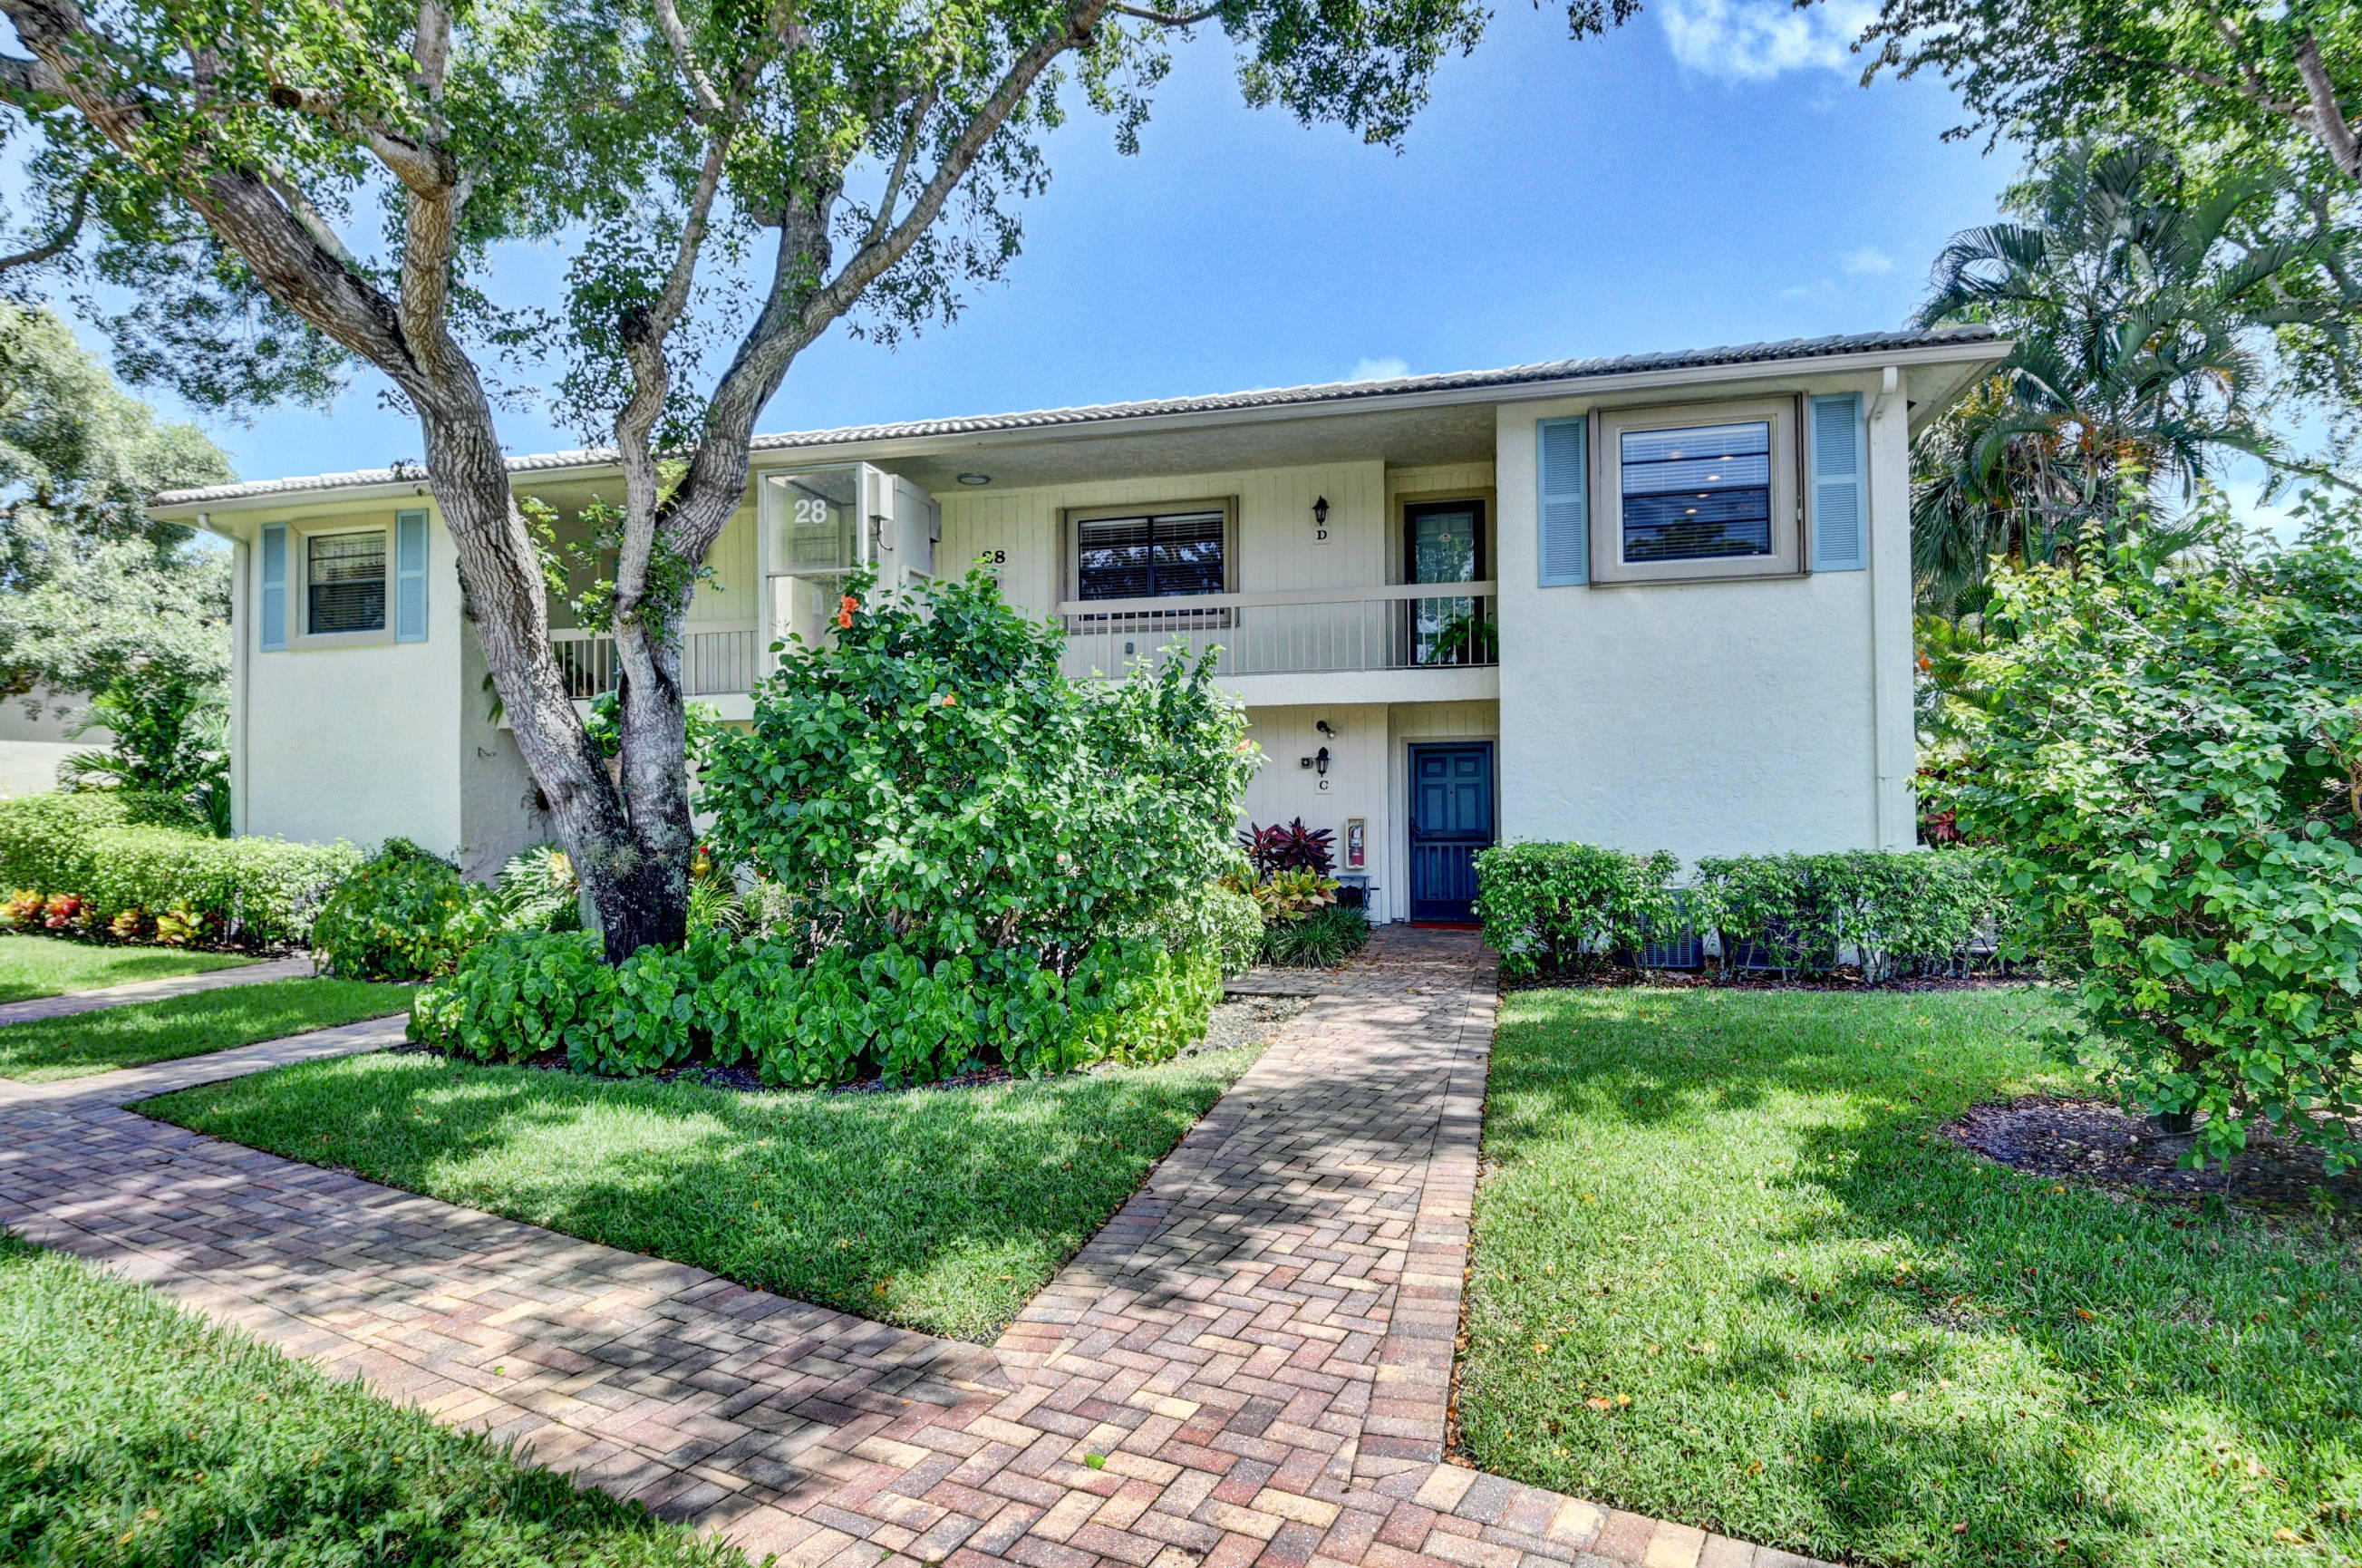 Photo of 28 Westgate Lane #D, Boynton Beach, FL 33436